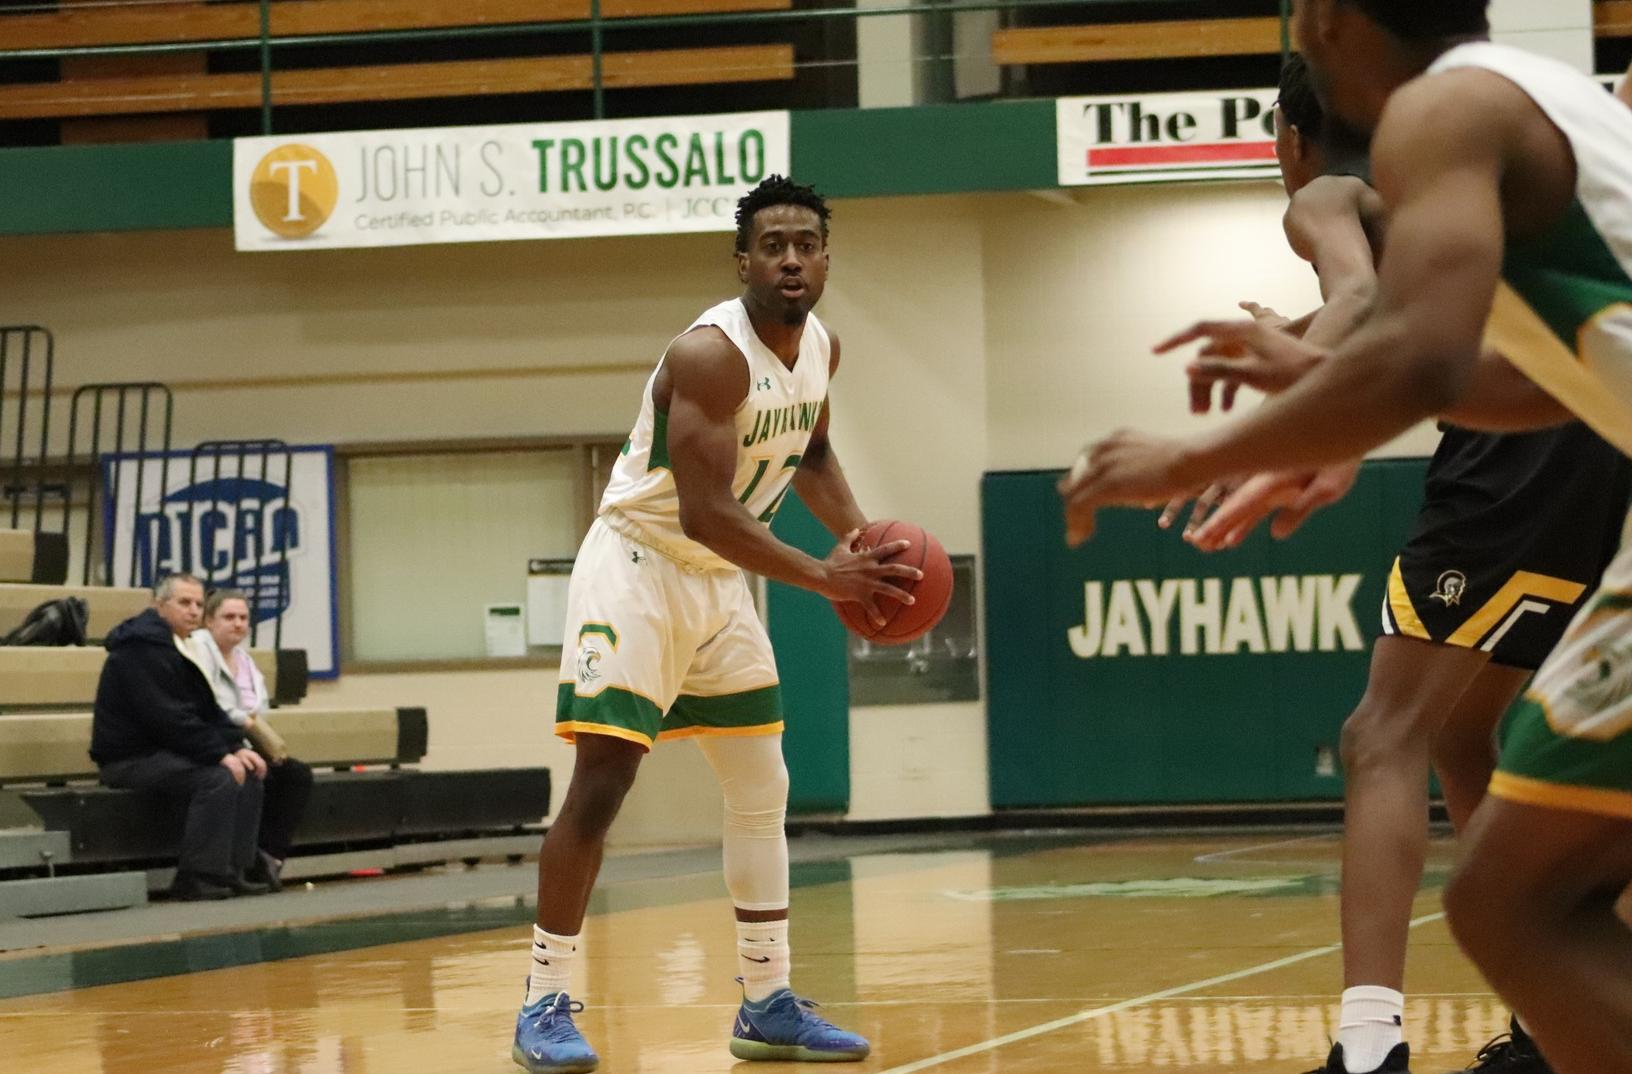 Jayhawks downed at home by the Tribunes